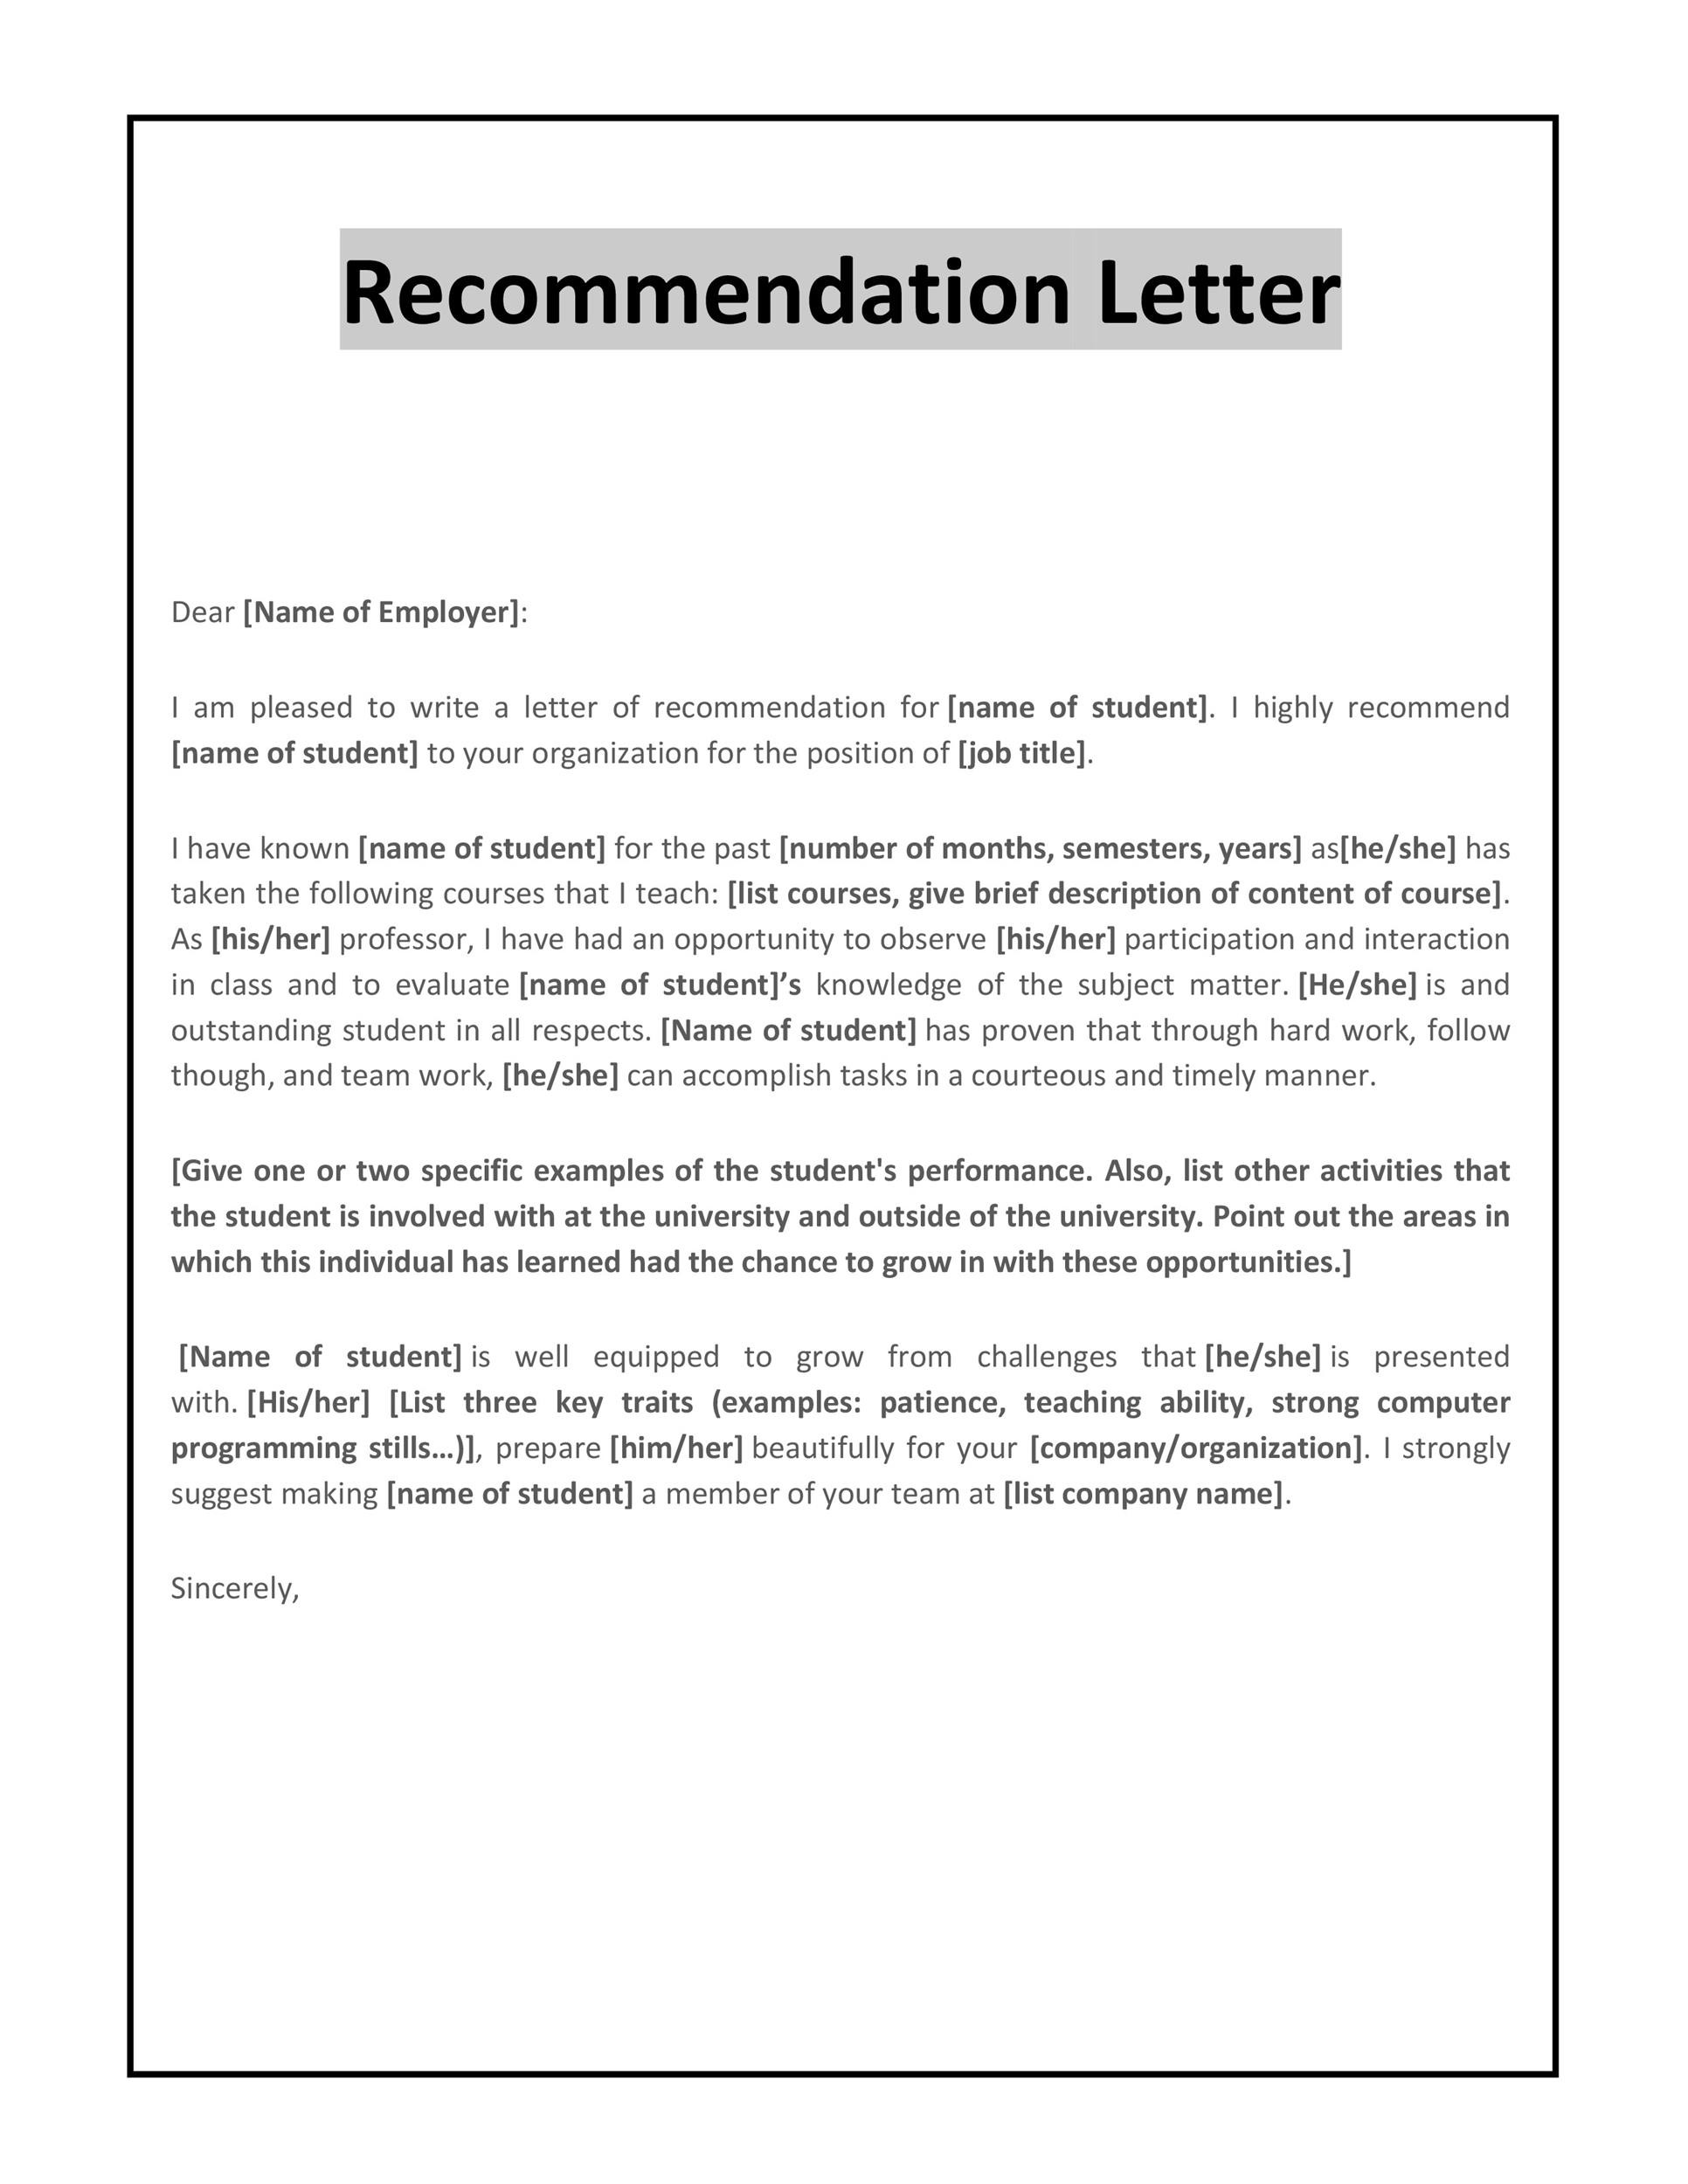 Free Letter Of Recommendation Template | 43 Free Letter Of Recommendation Templates Samples